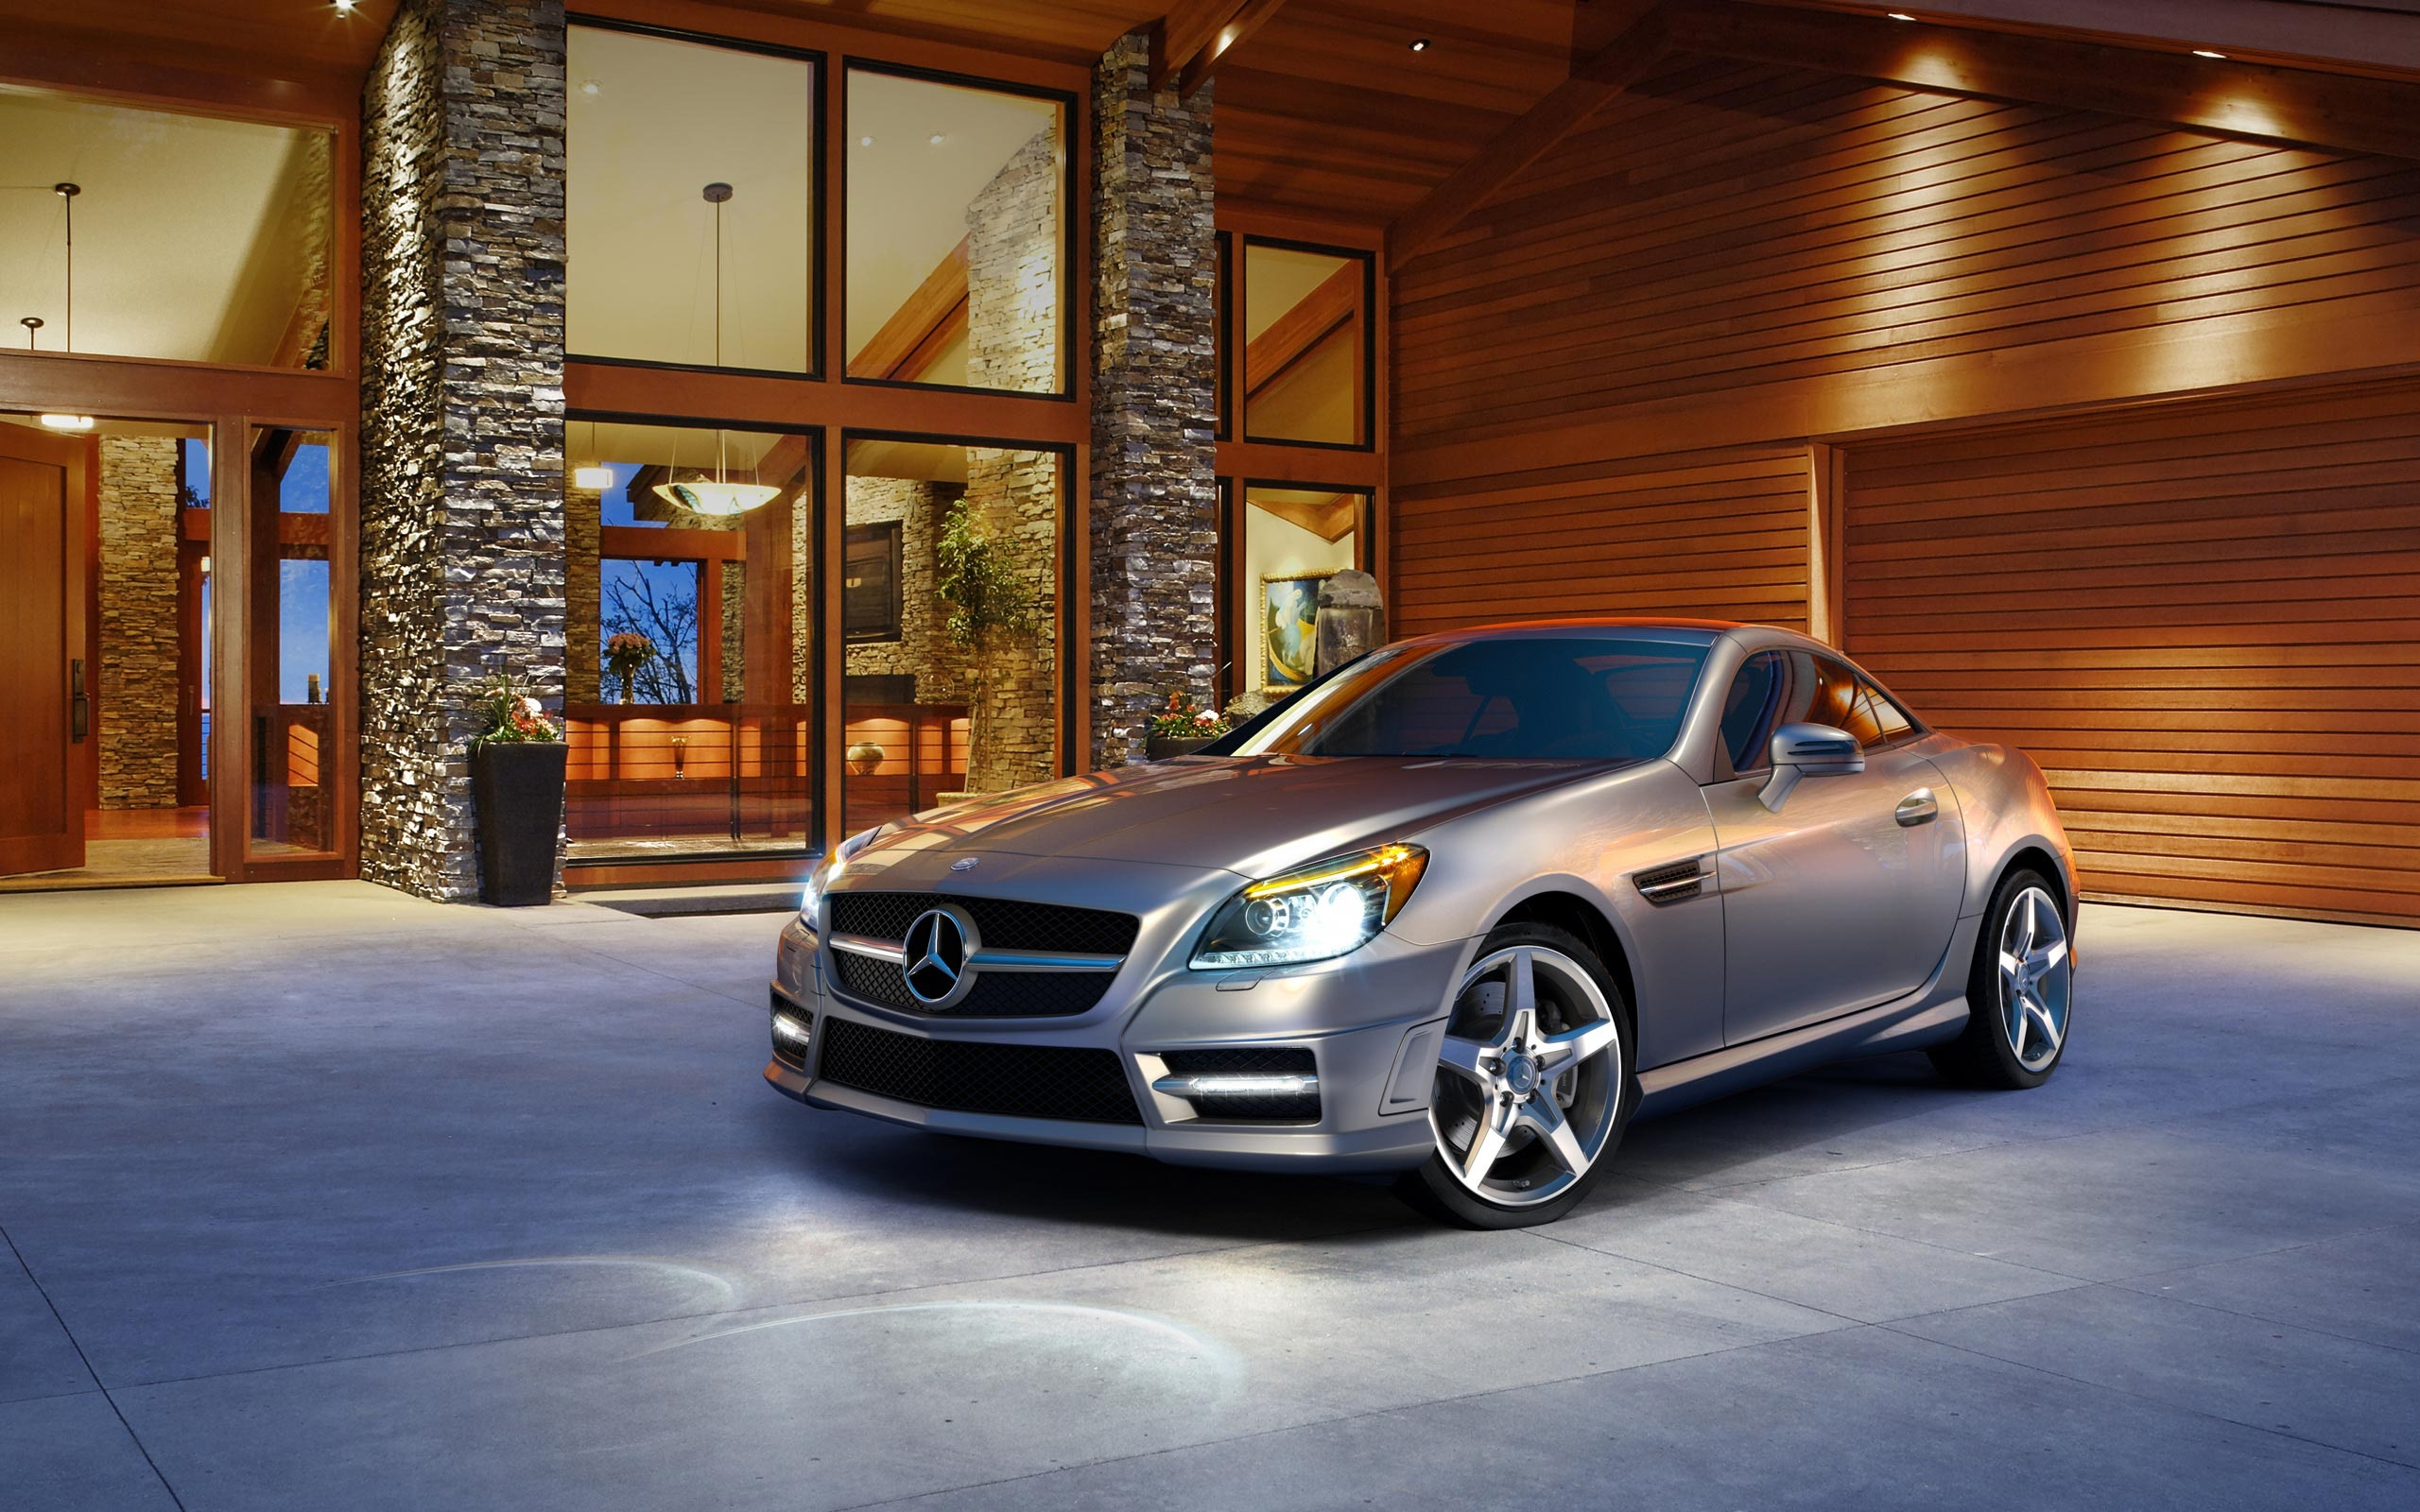 2012 SLK Class Roadster for 2560 x 1600 widescreen resolution